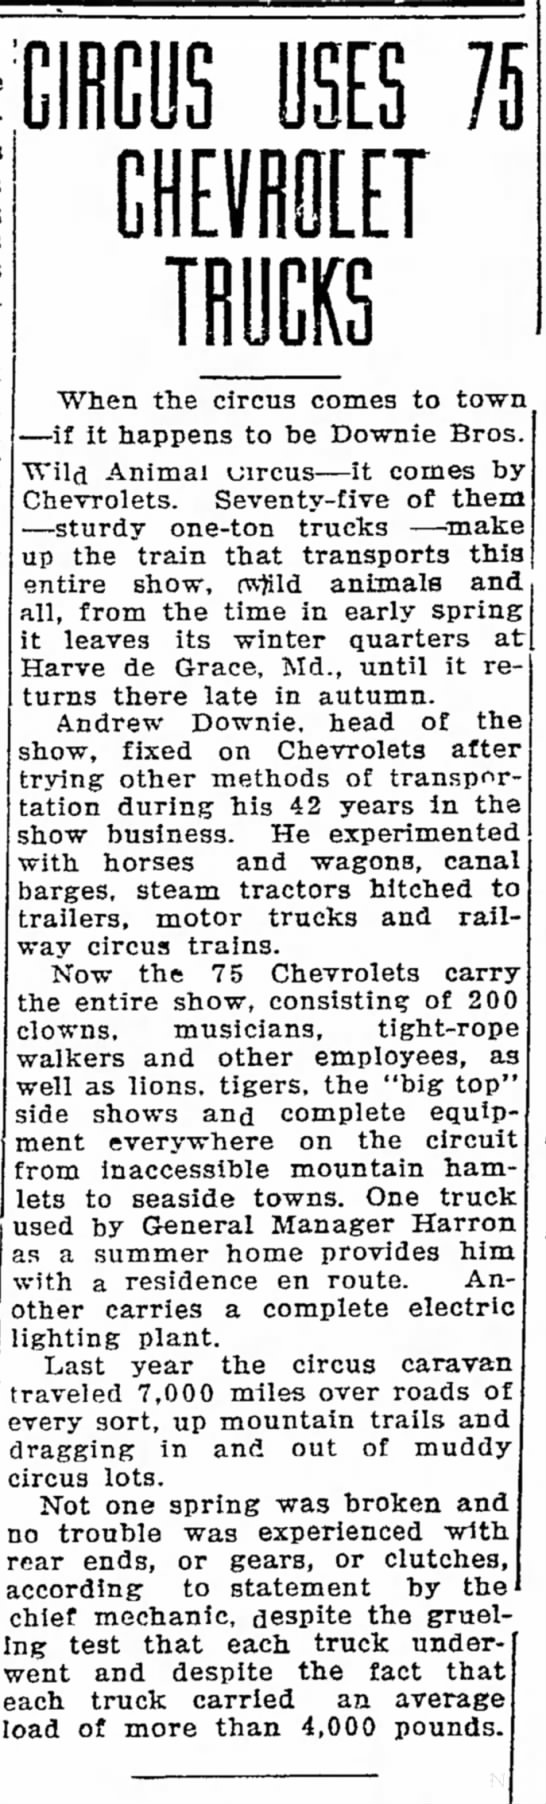 Downie Chevy Article 10-9-1927 - its six ol well. up and and S USES 75 CHEVROLET...